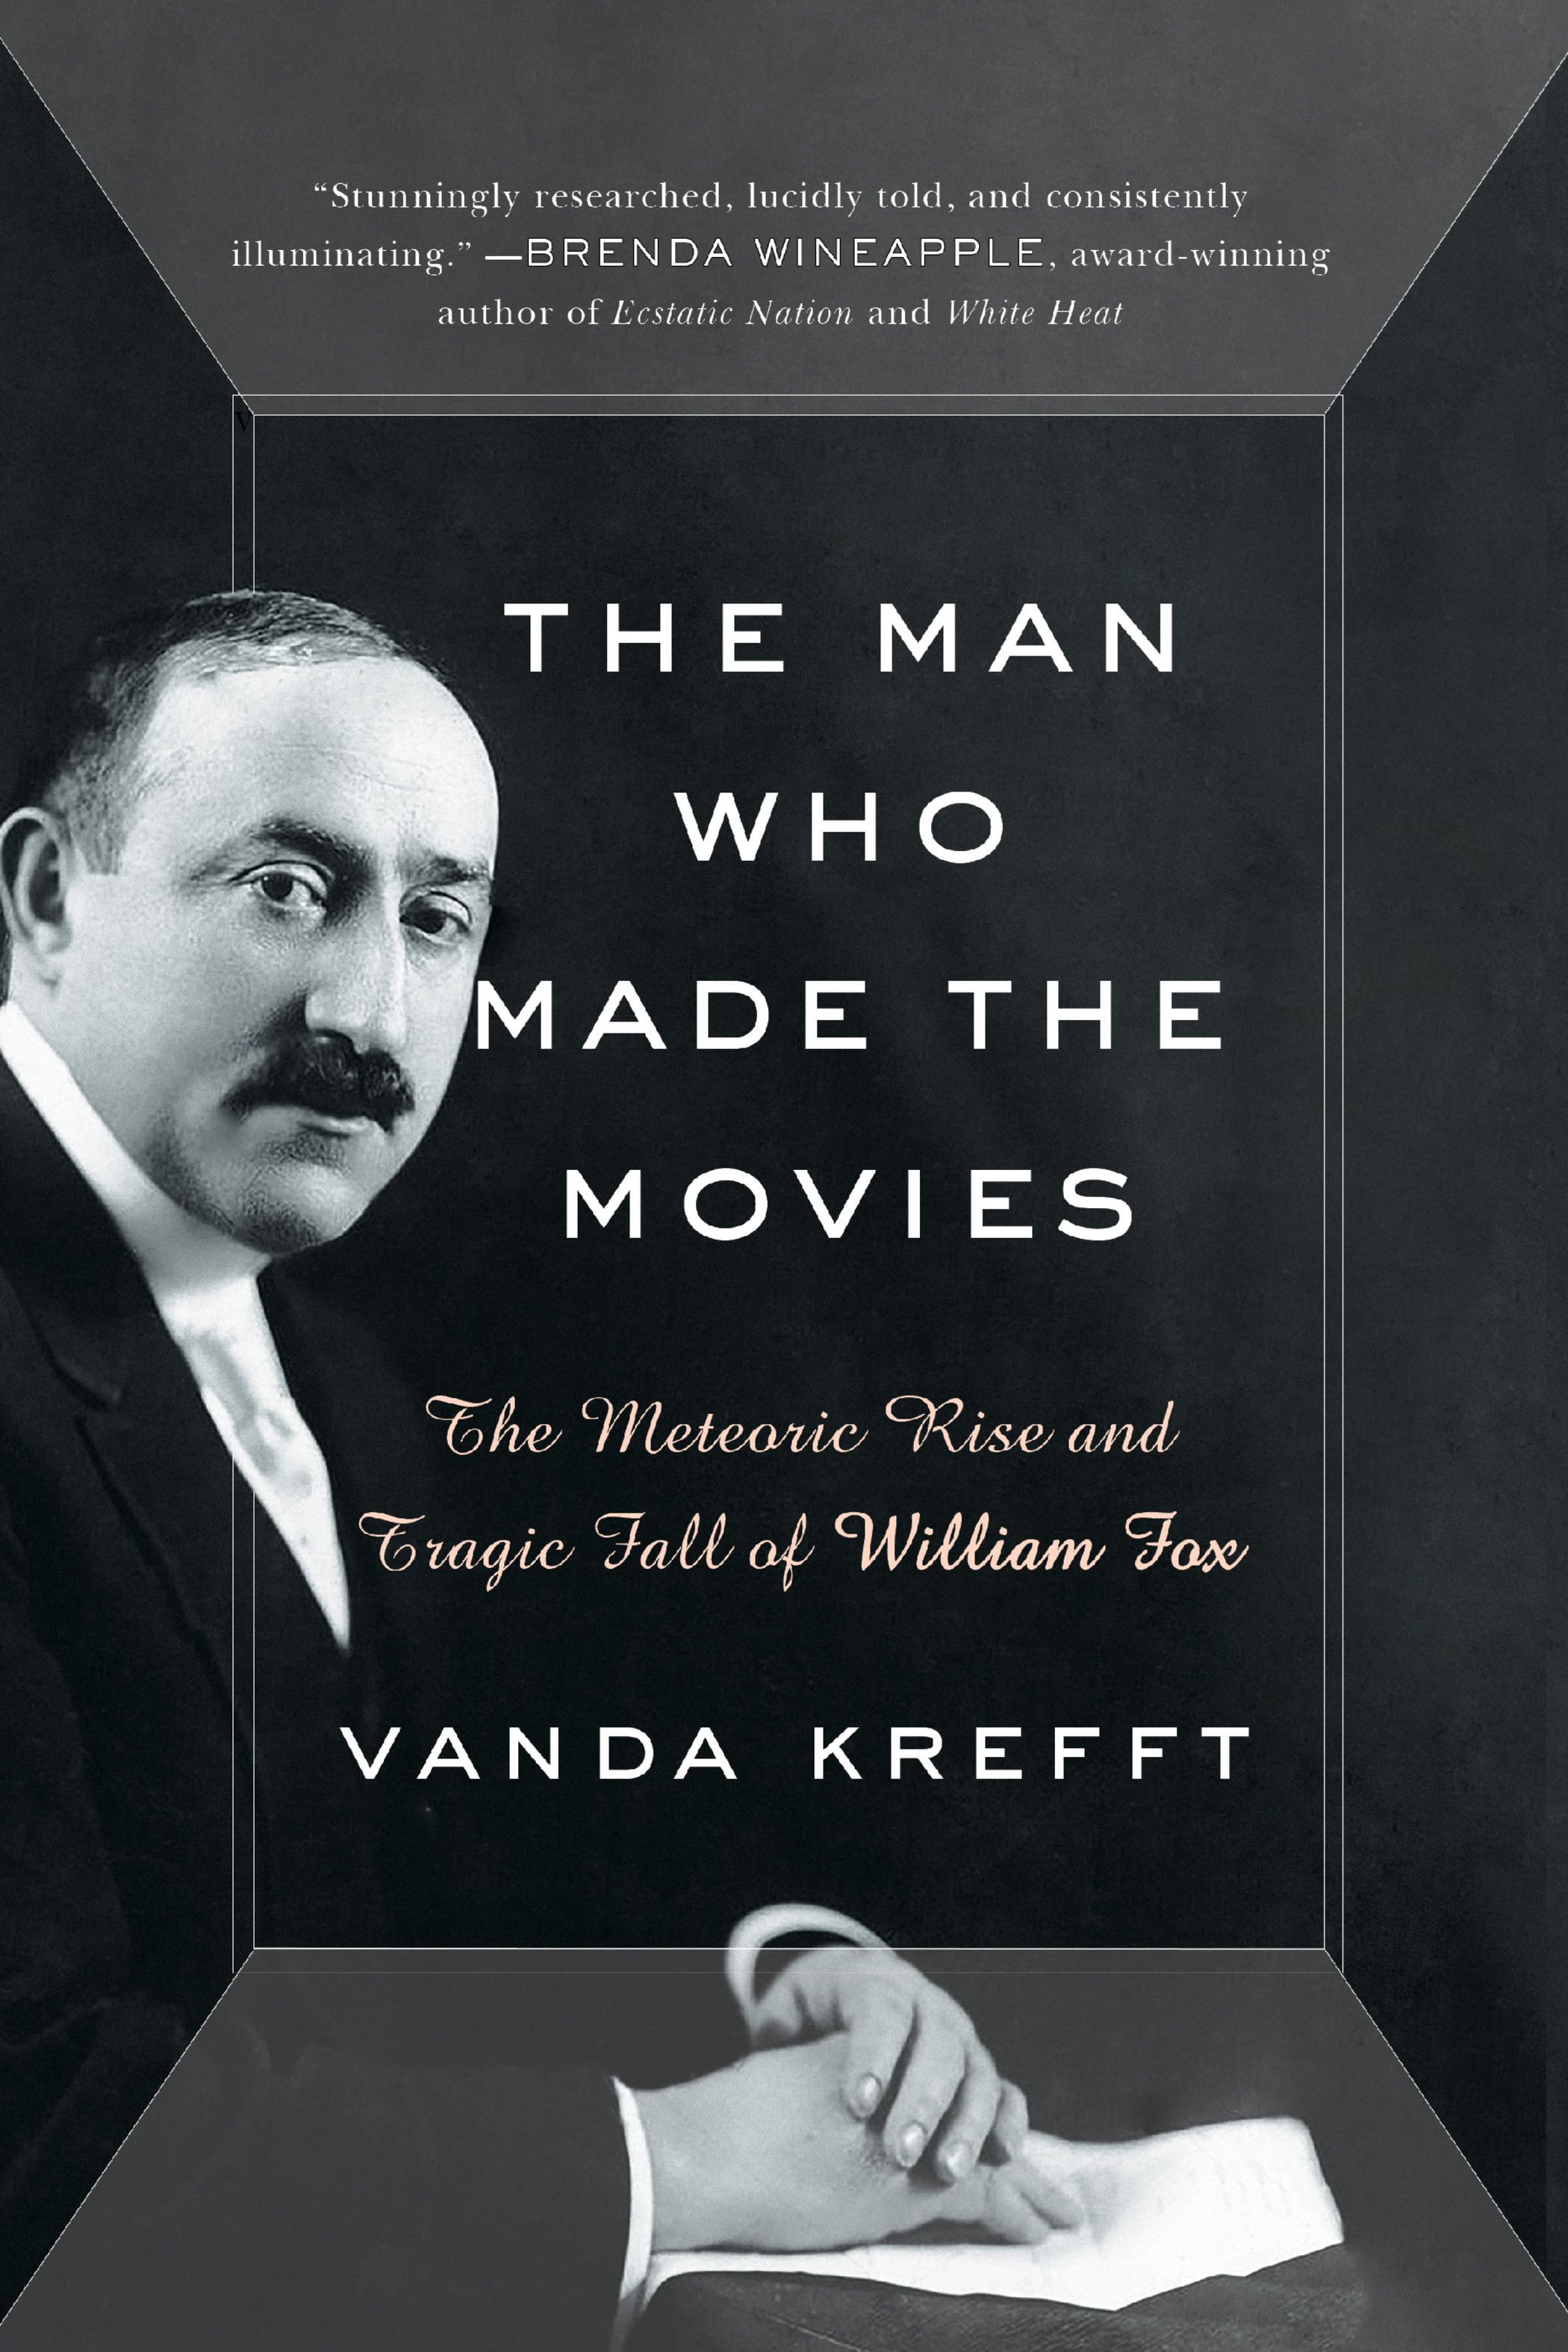 the man who made the movies.JPG